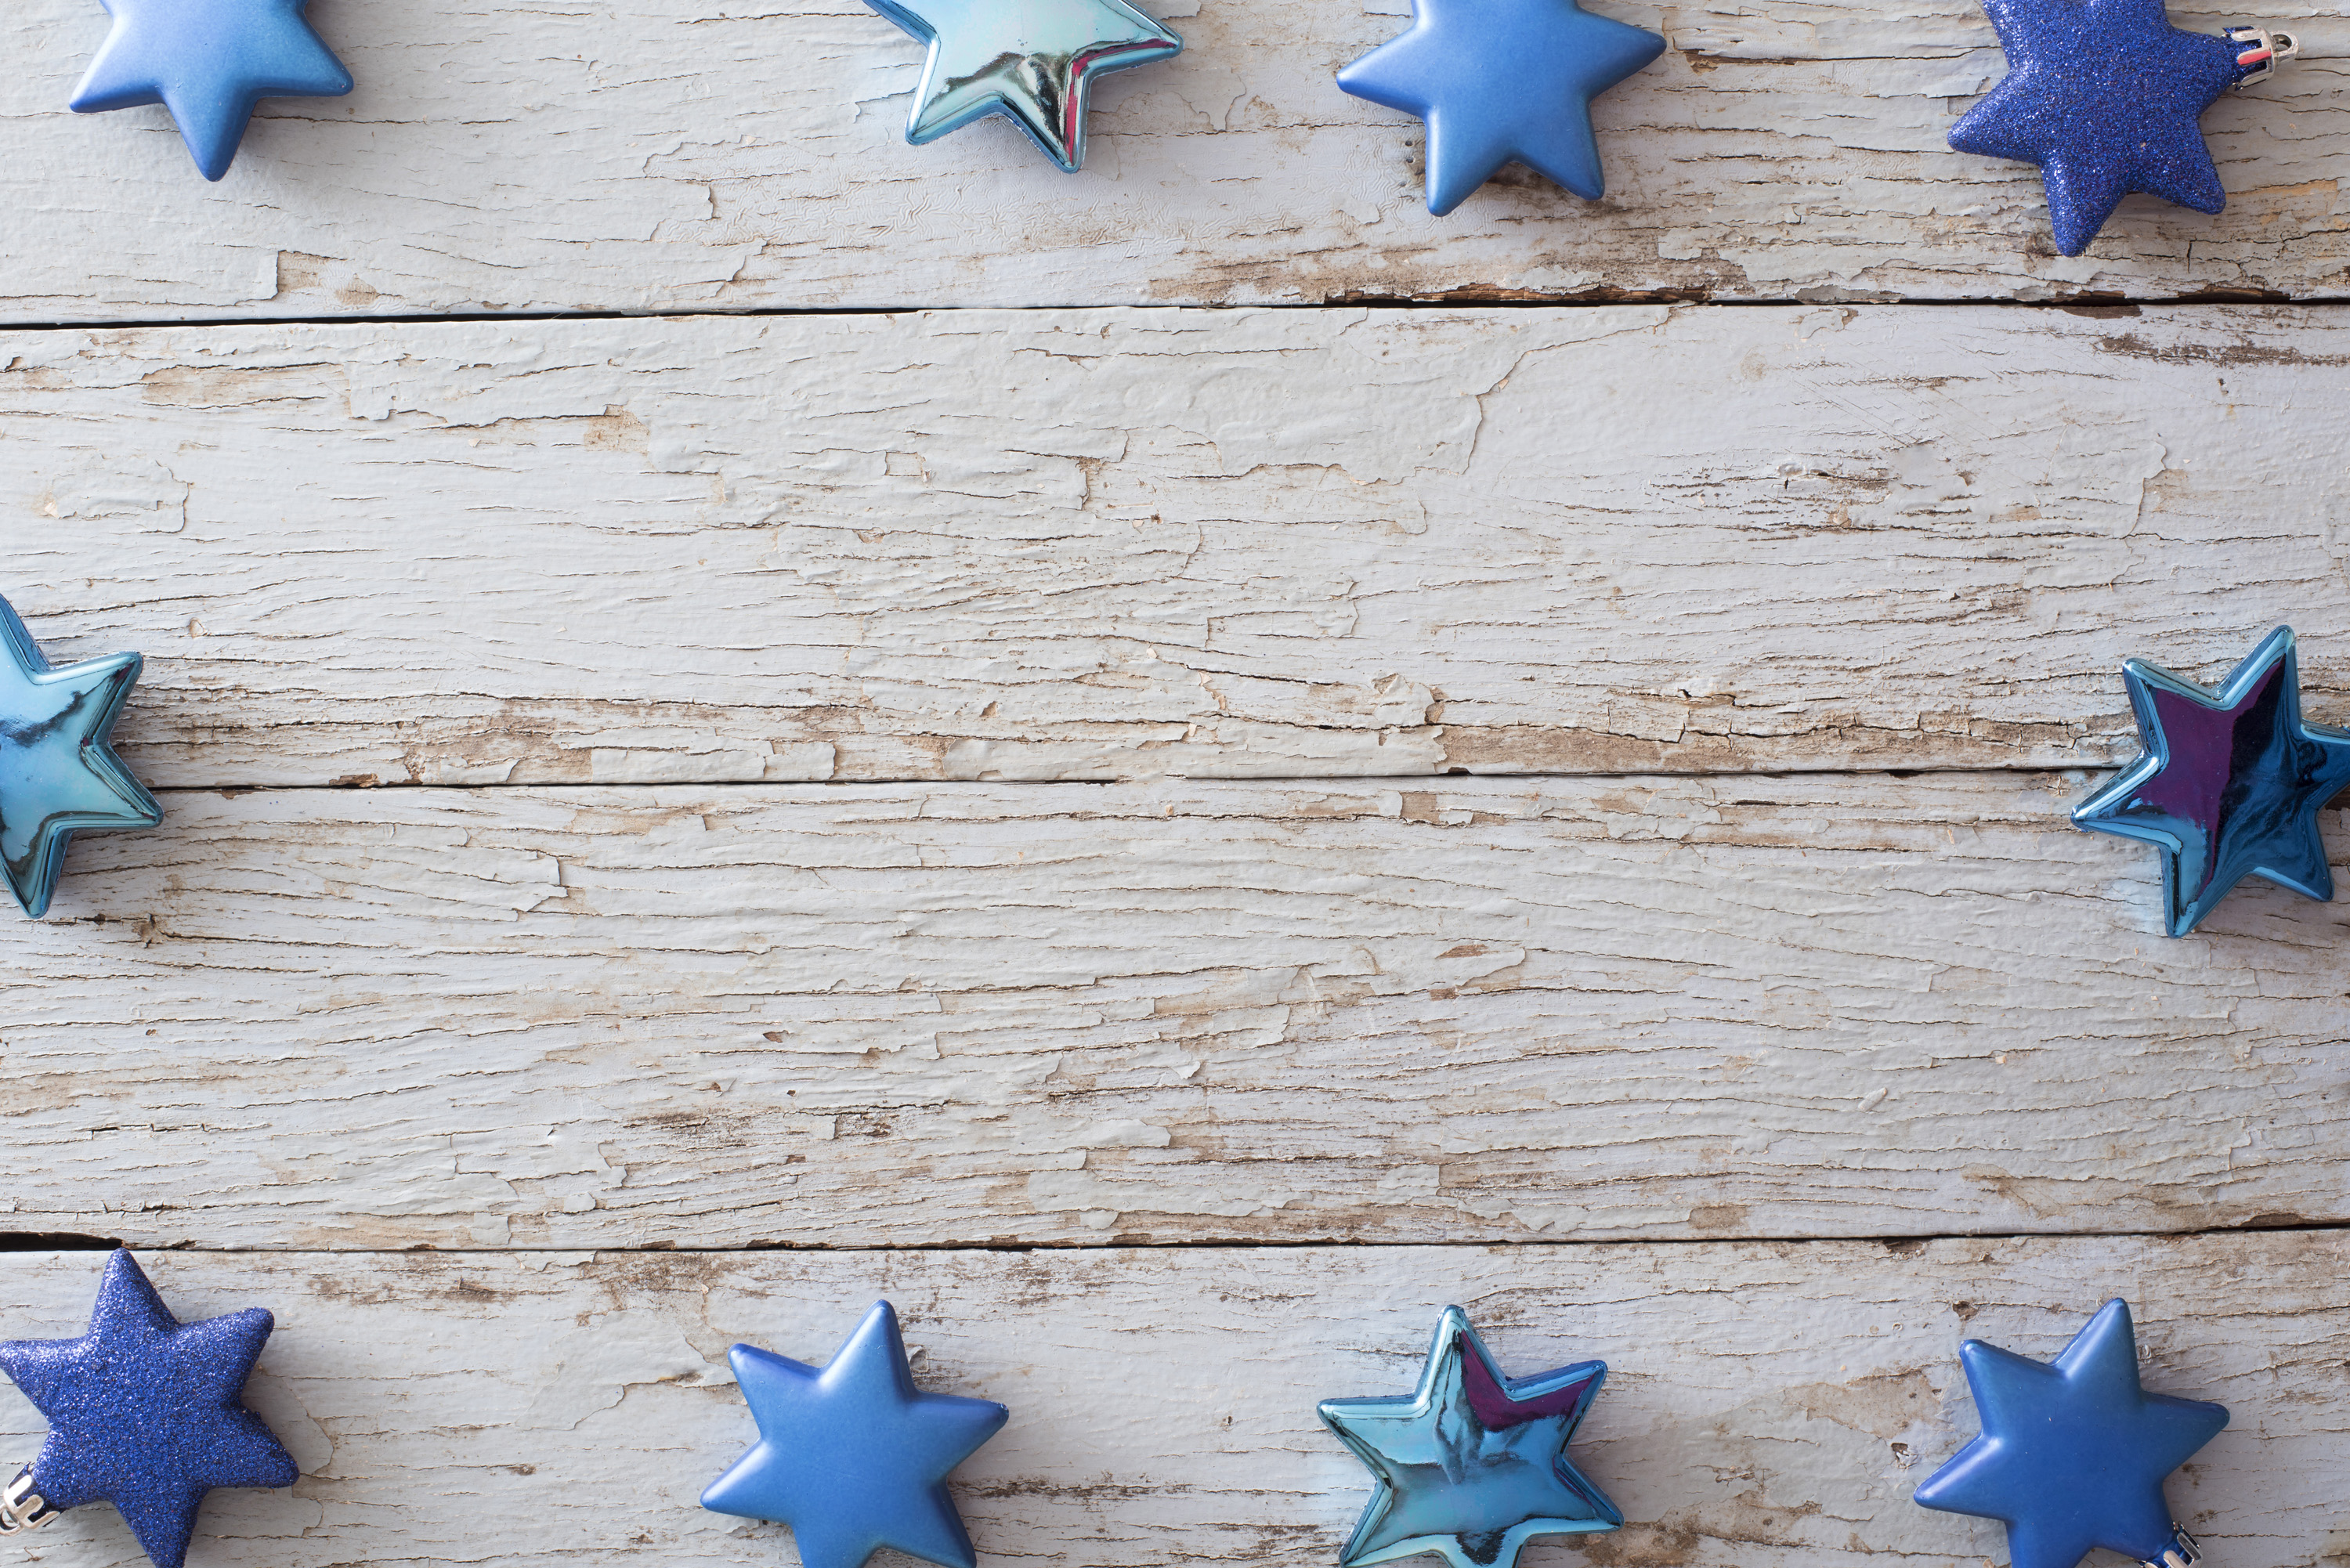 Decorative Blue Star Christmas Border Or Frame On Old Rustic Weathered Textured Wood Around A Central